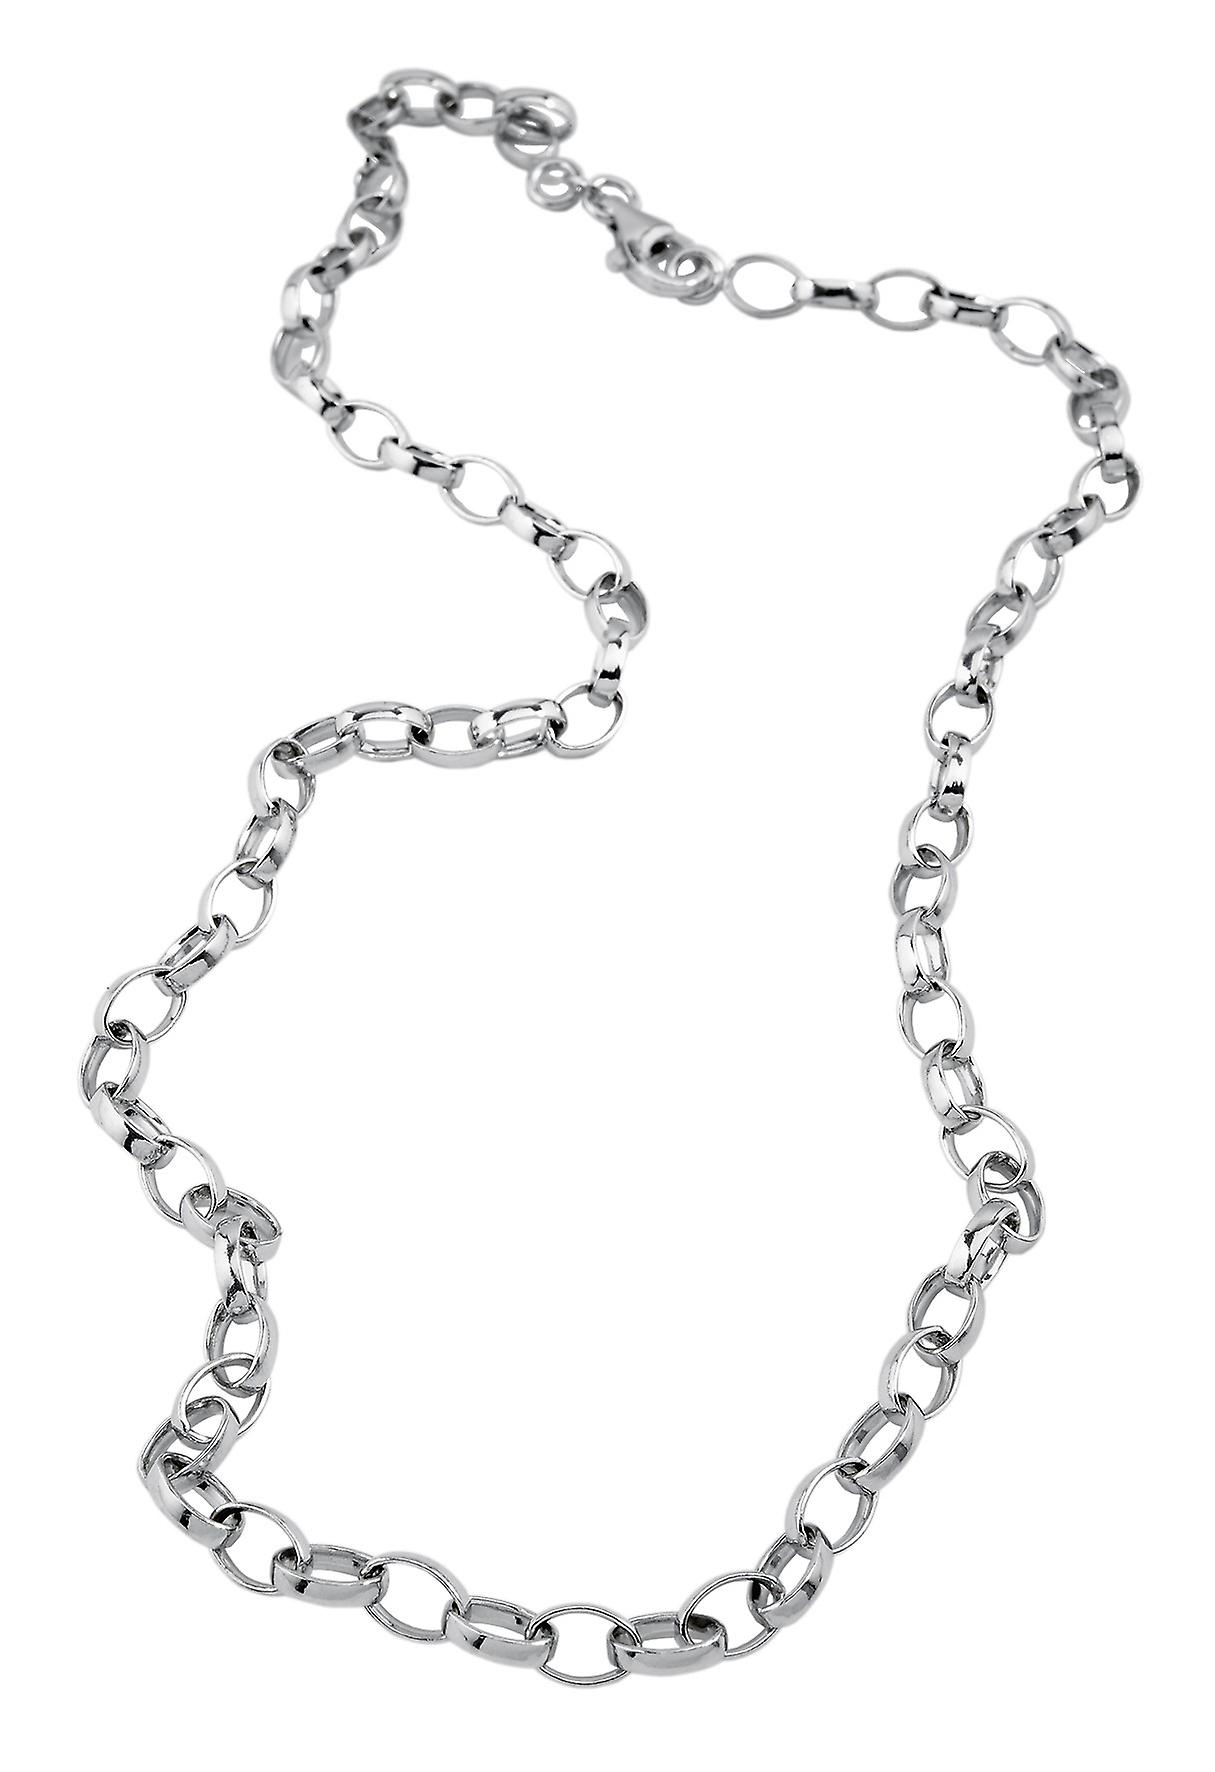 Burgmeister charms-women's necklace JBM1056-429, 925 sterling silver rhodanized, fantasy chain for carms